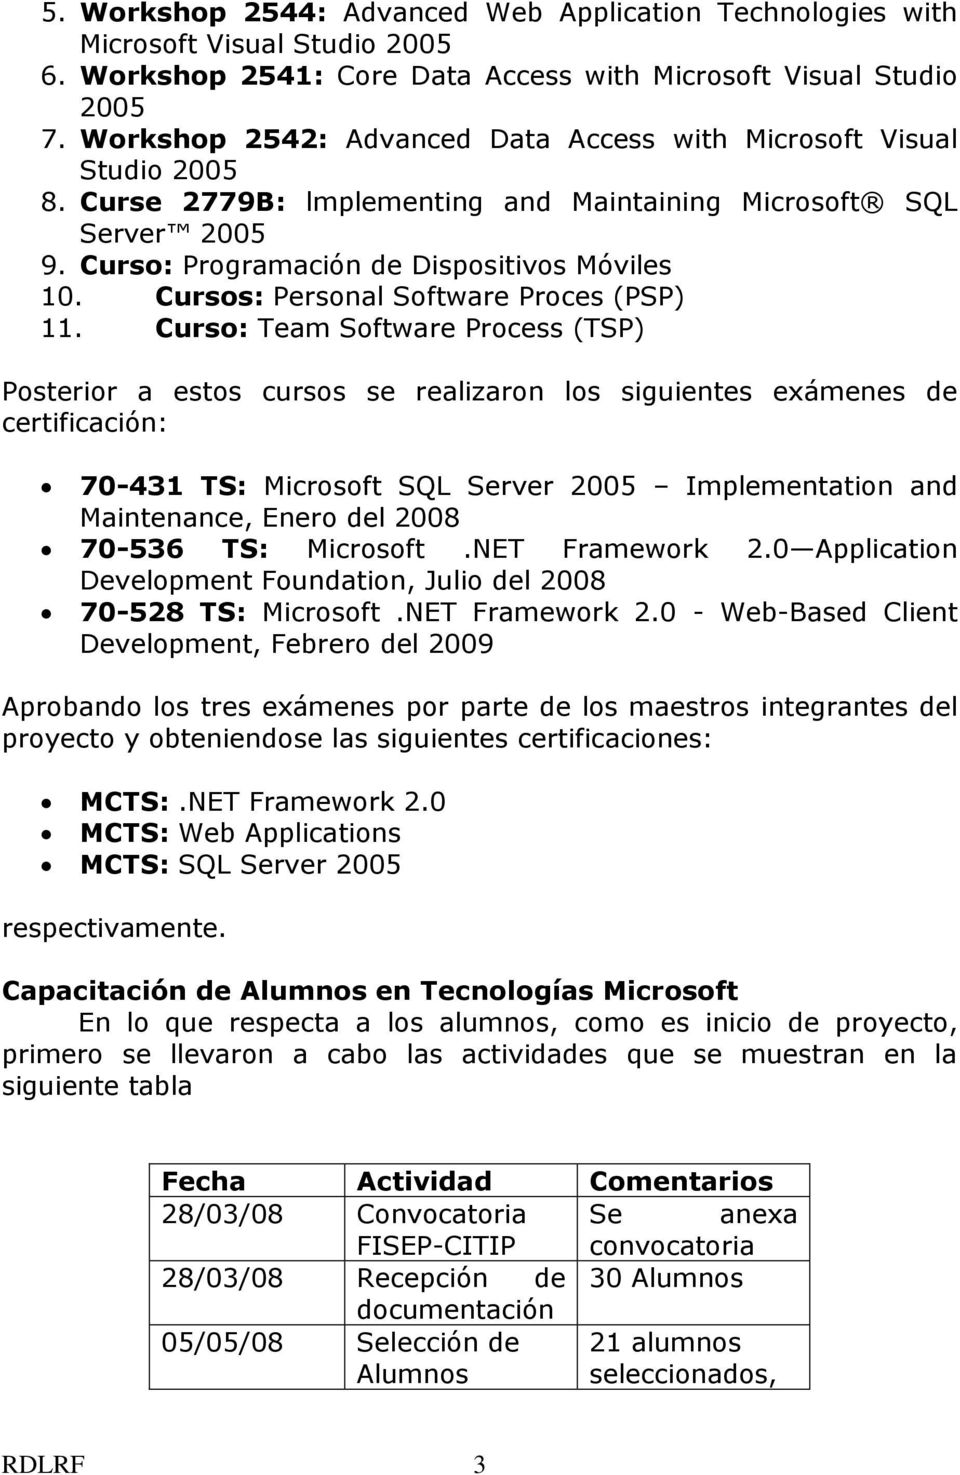 Cursos: Personal Software Proces (PSP) 11.